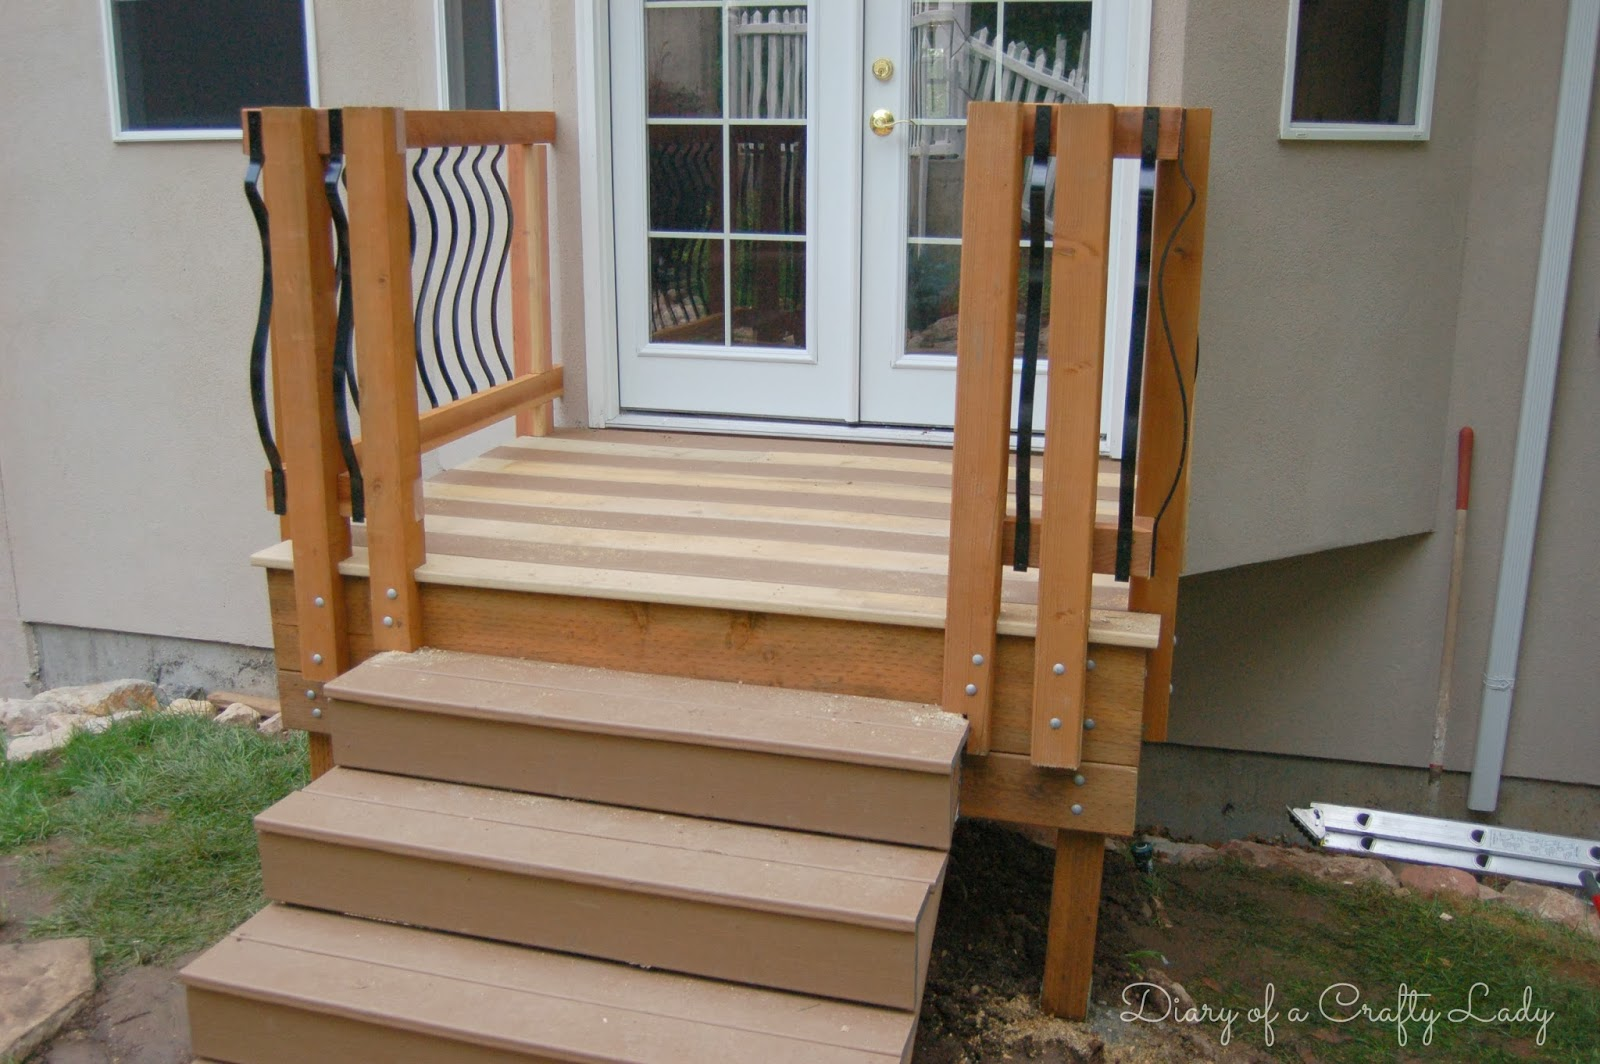 Diary Of A Crafty Lady Building A Deck A Power Tool Project | Making Steps For Decking